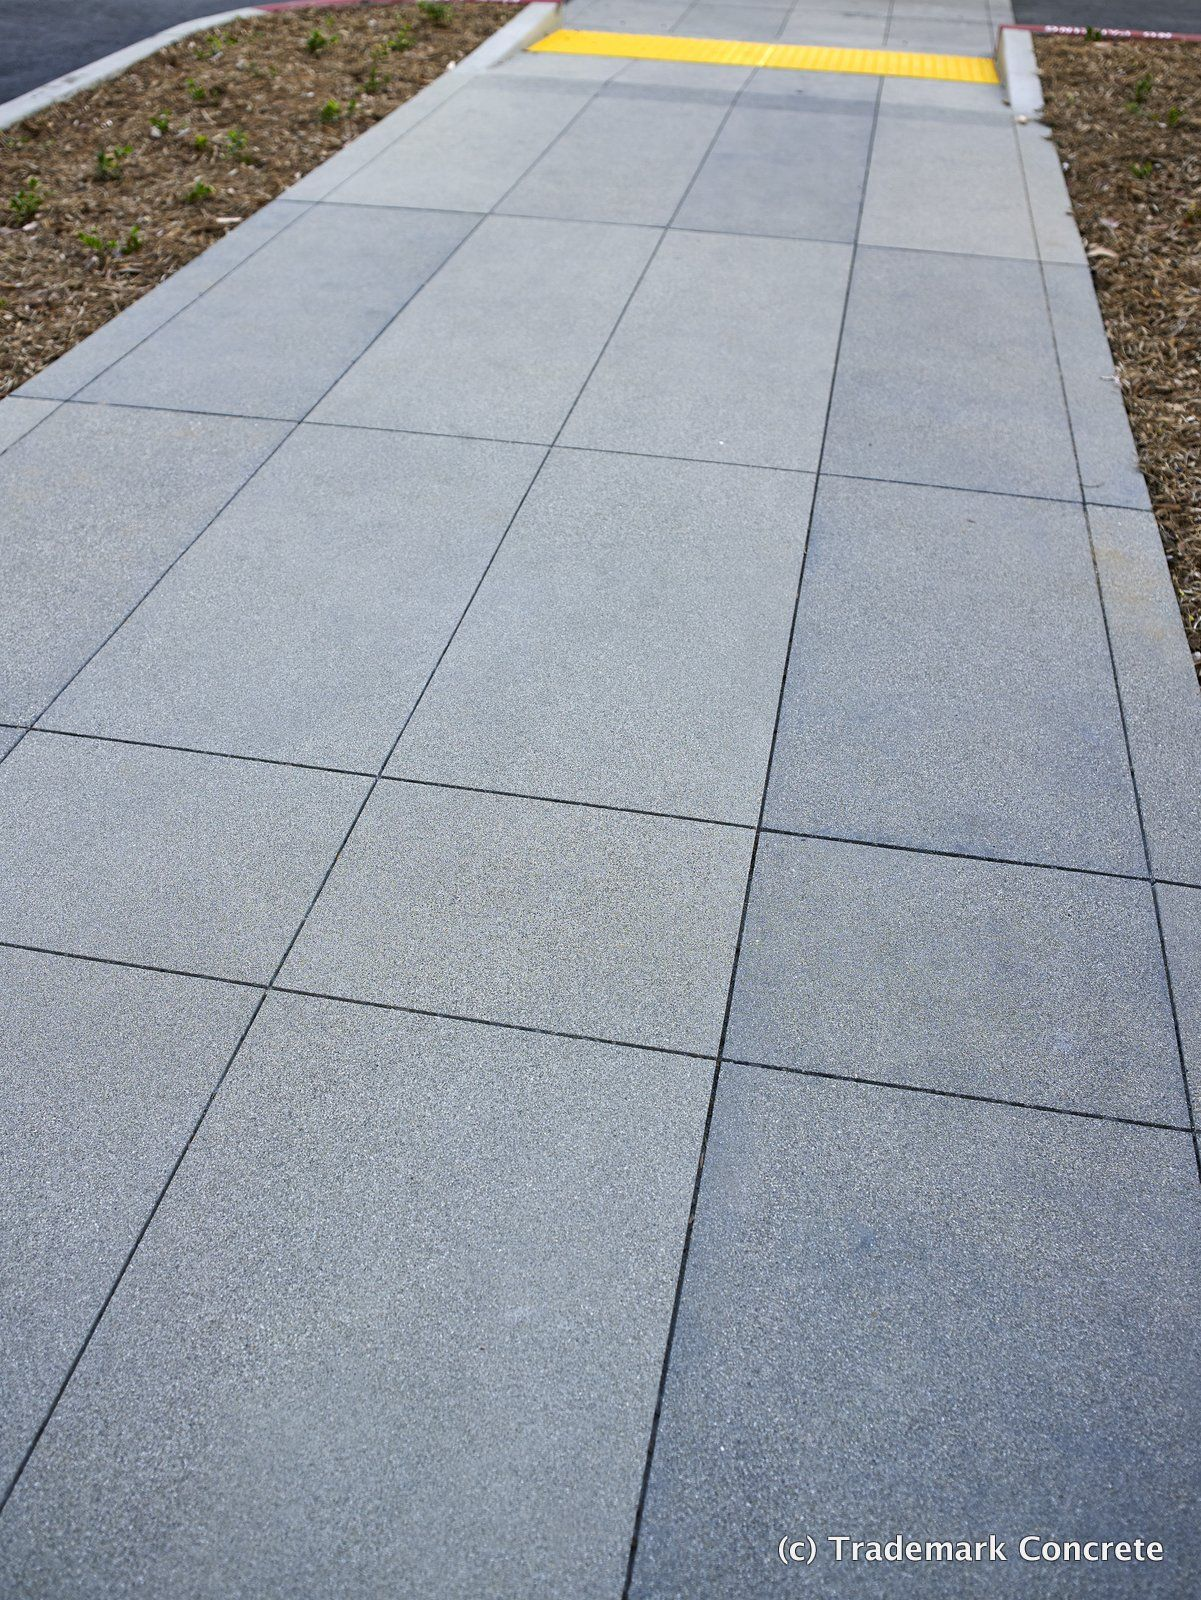 Decorative Concrete Installed By DCC Member Trademark Concrete   Sawcut  Grid Pattern U0026 Various Integral Colors